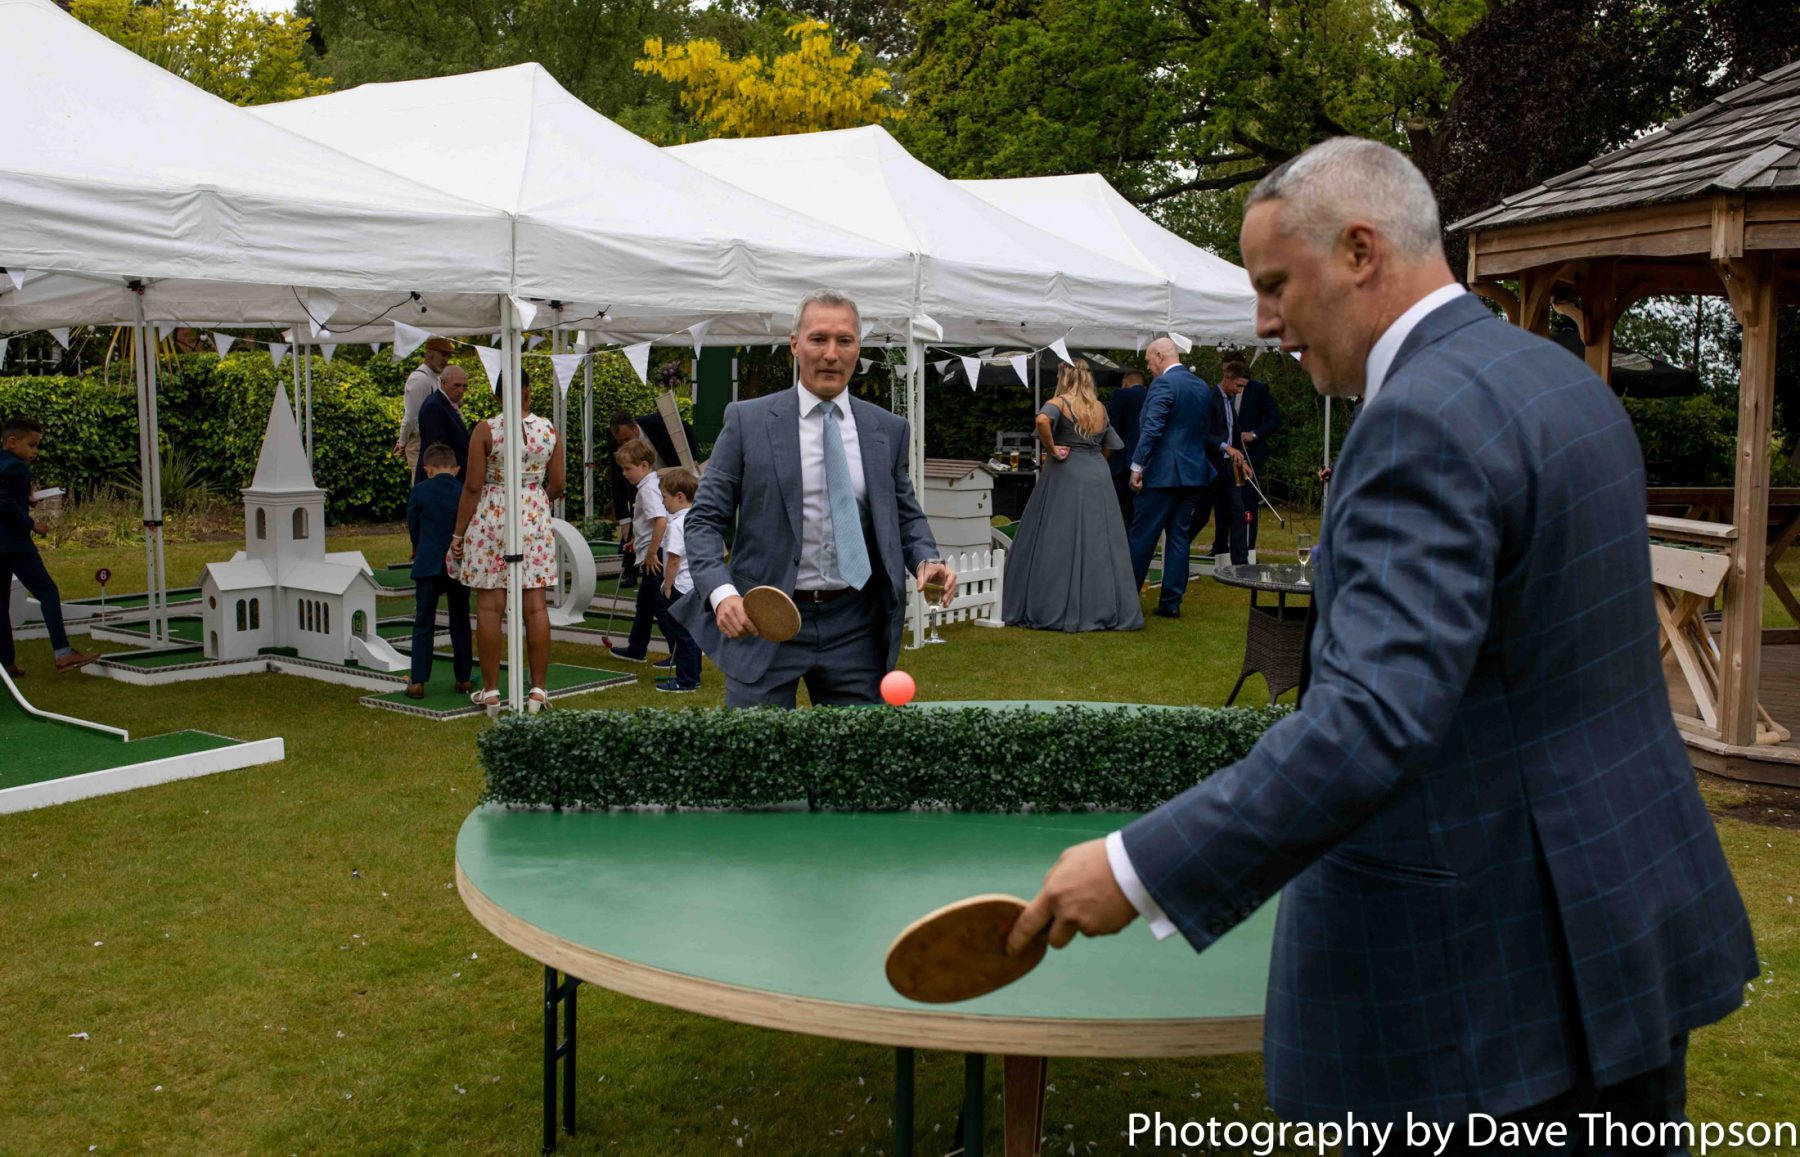 Revolving table tennis on the lawn during a wedding at Mere Court Hotel